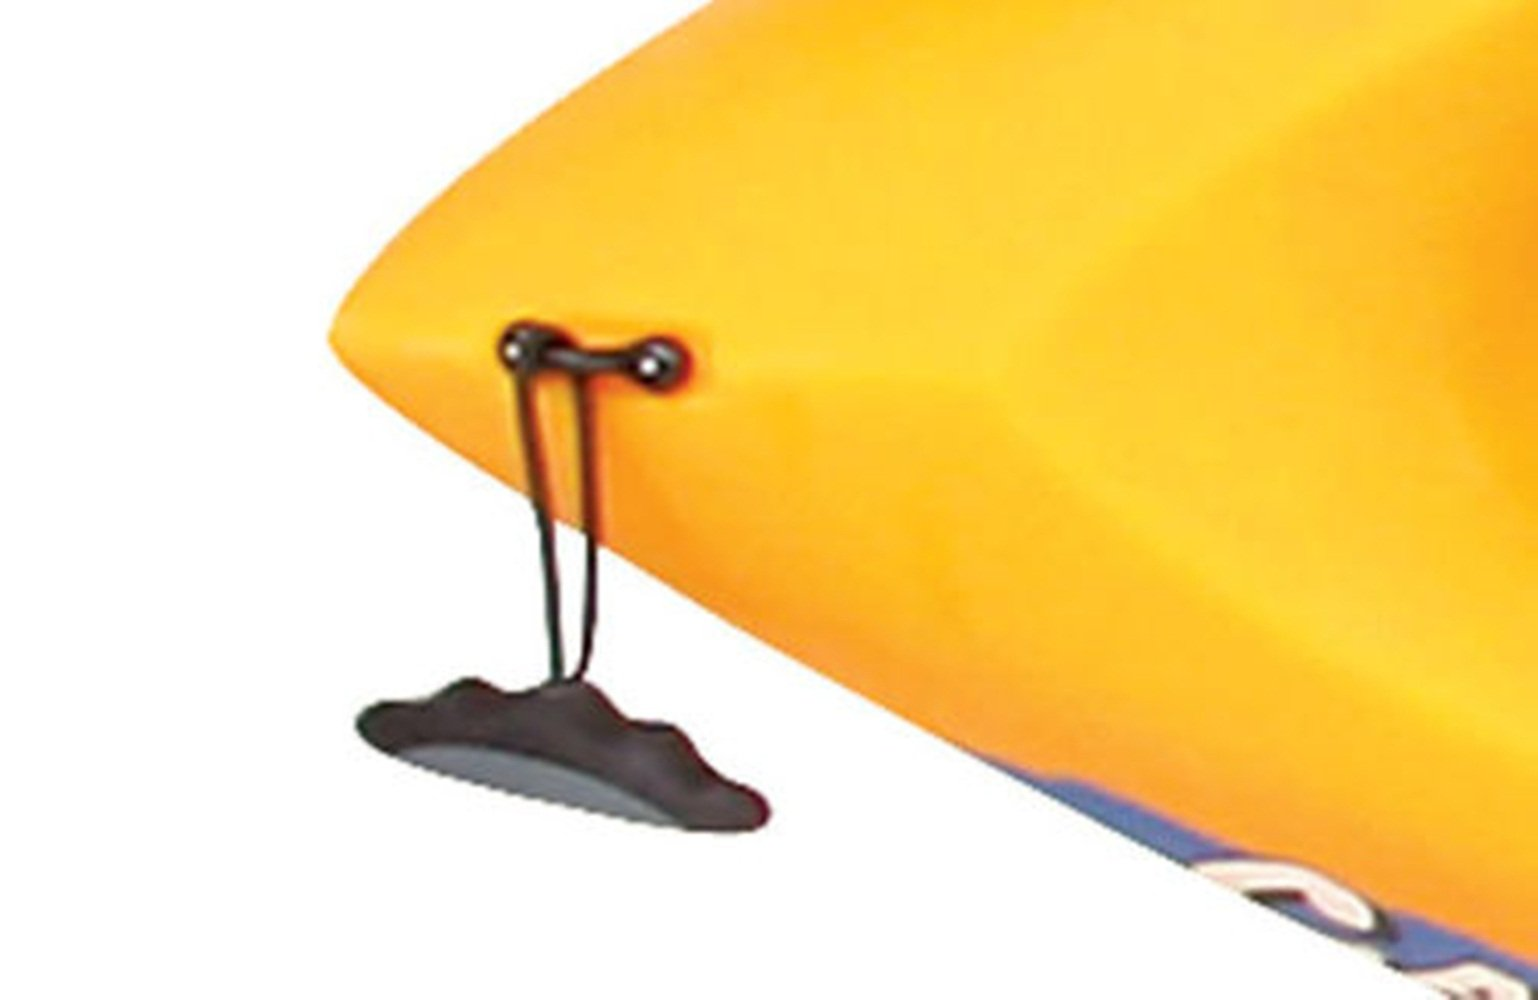 Kayak Handles Replacement Ocean Toggle by Canoe (Image #1)